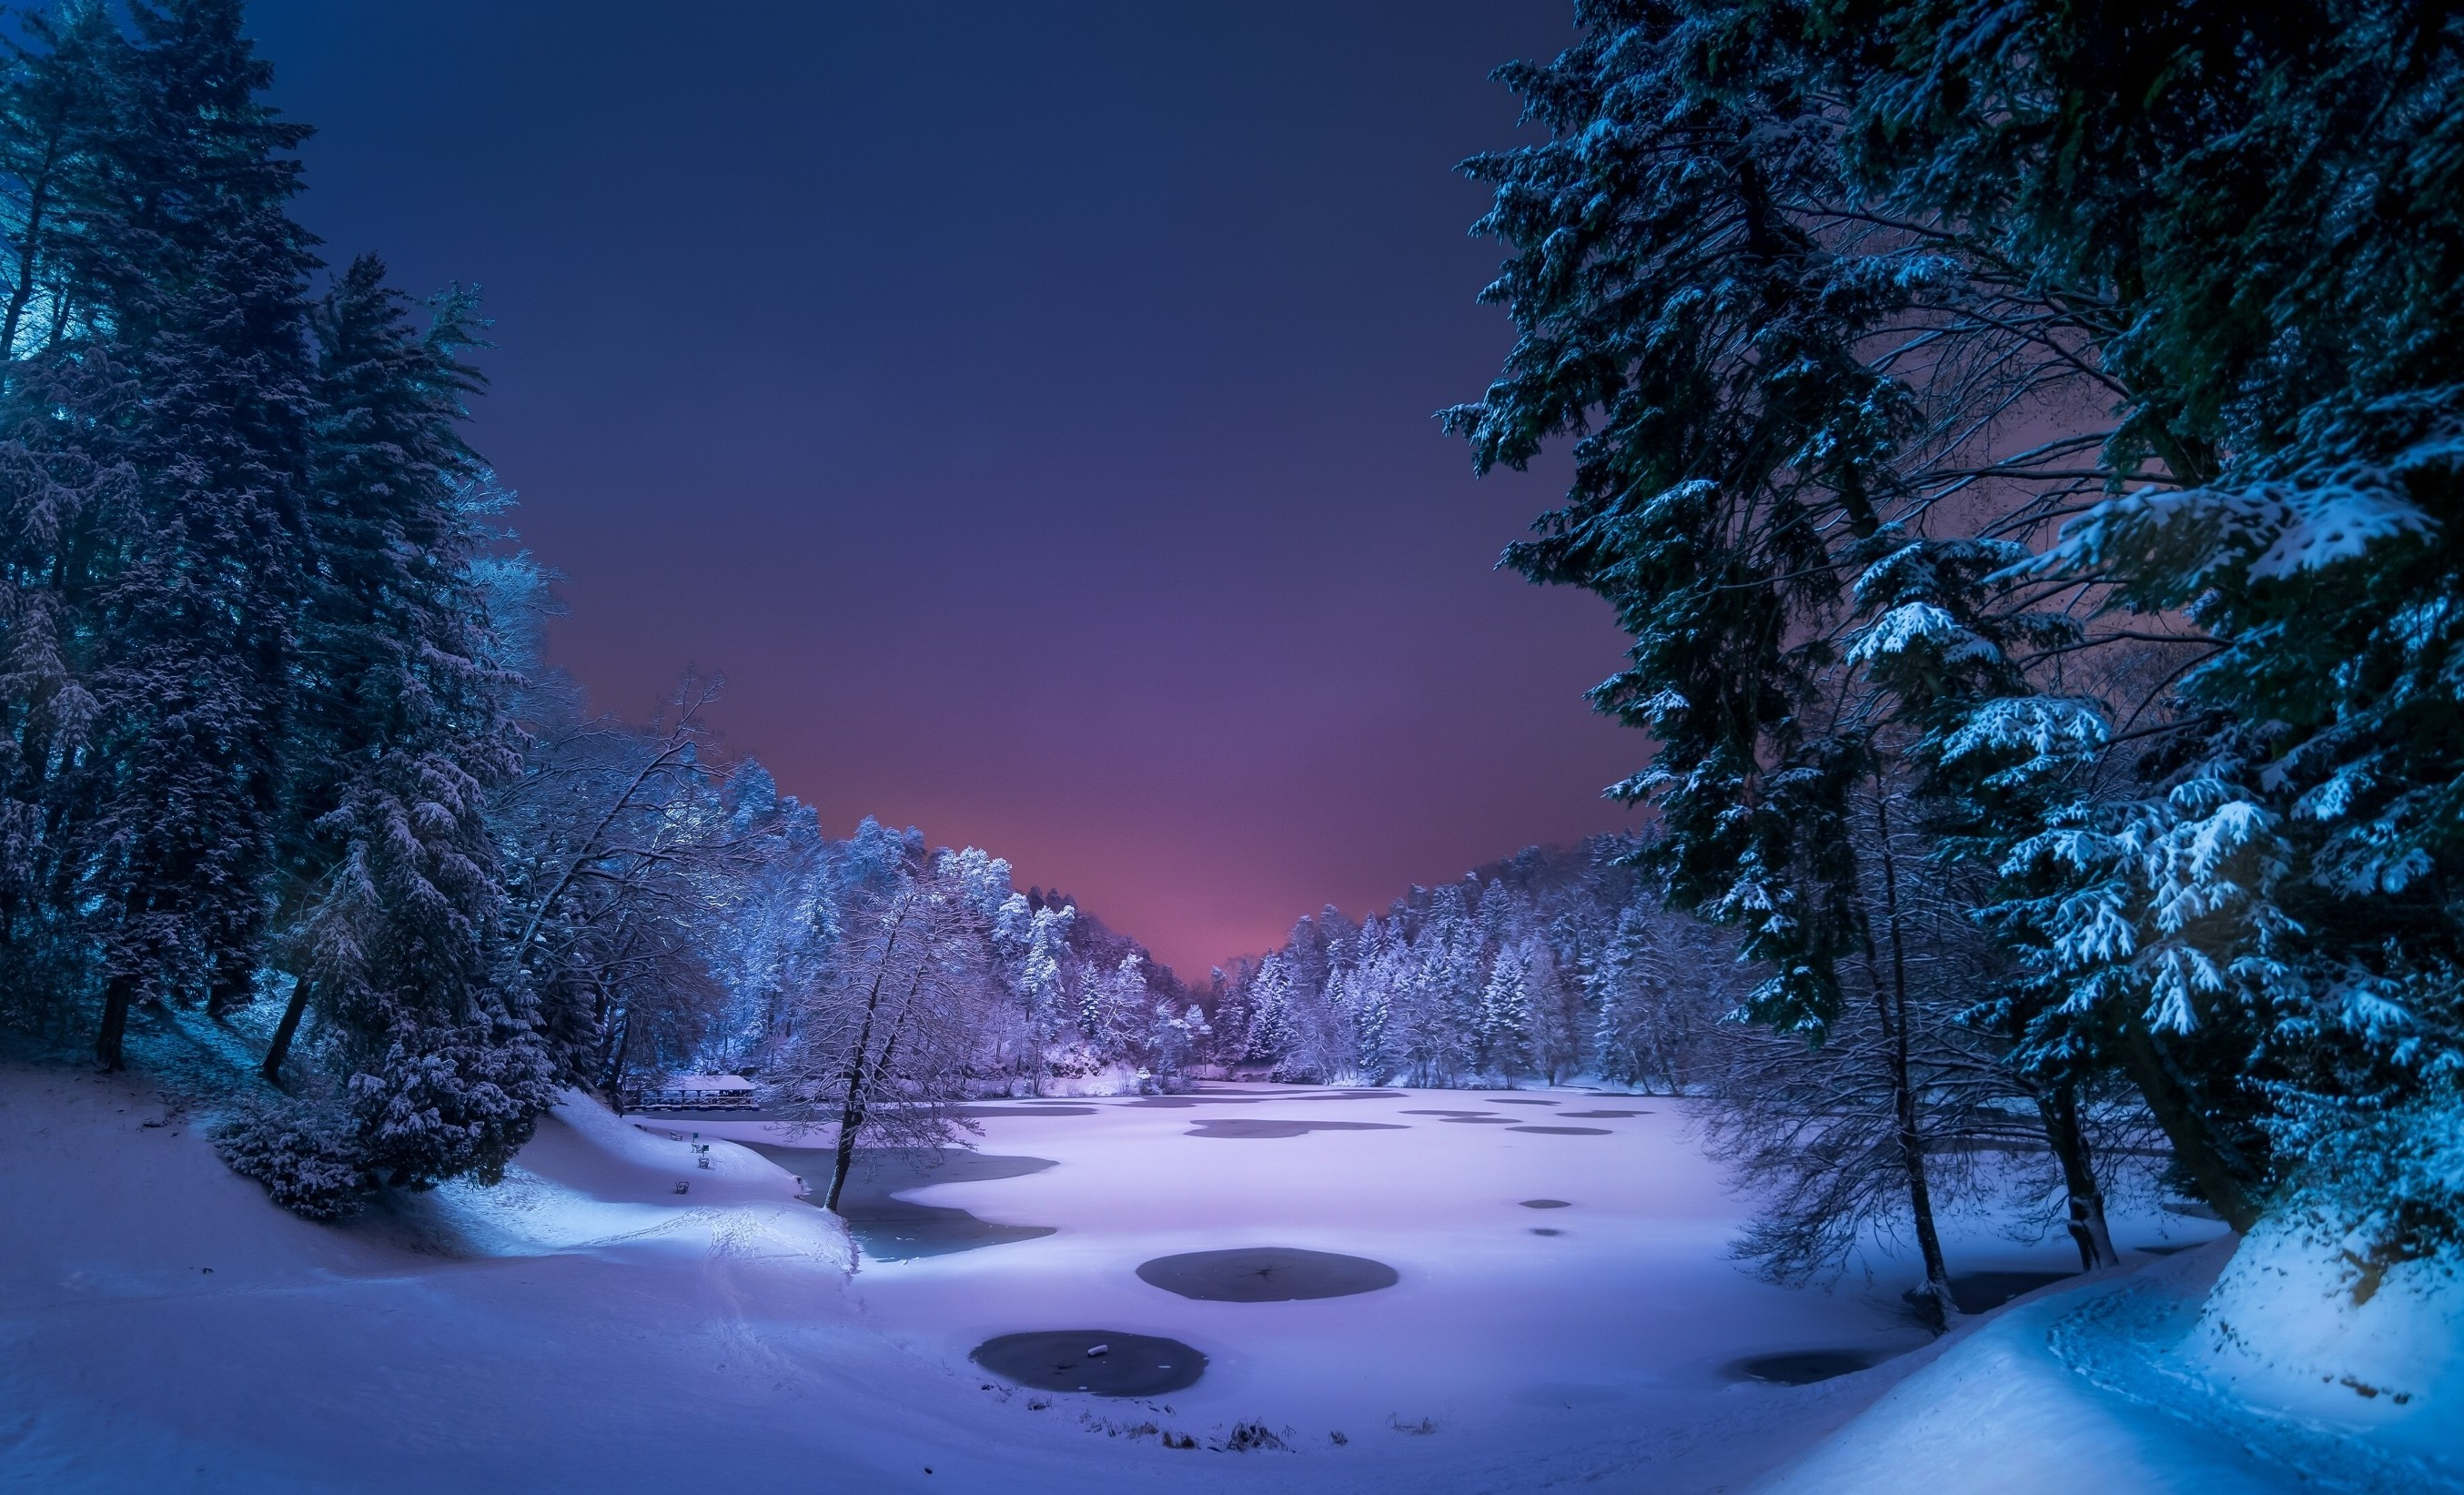 Night Landscape Snow Ice Winter Trees Nature 365983